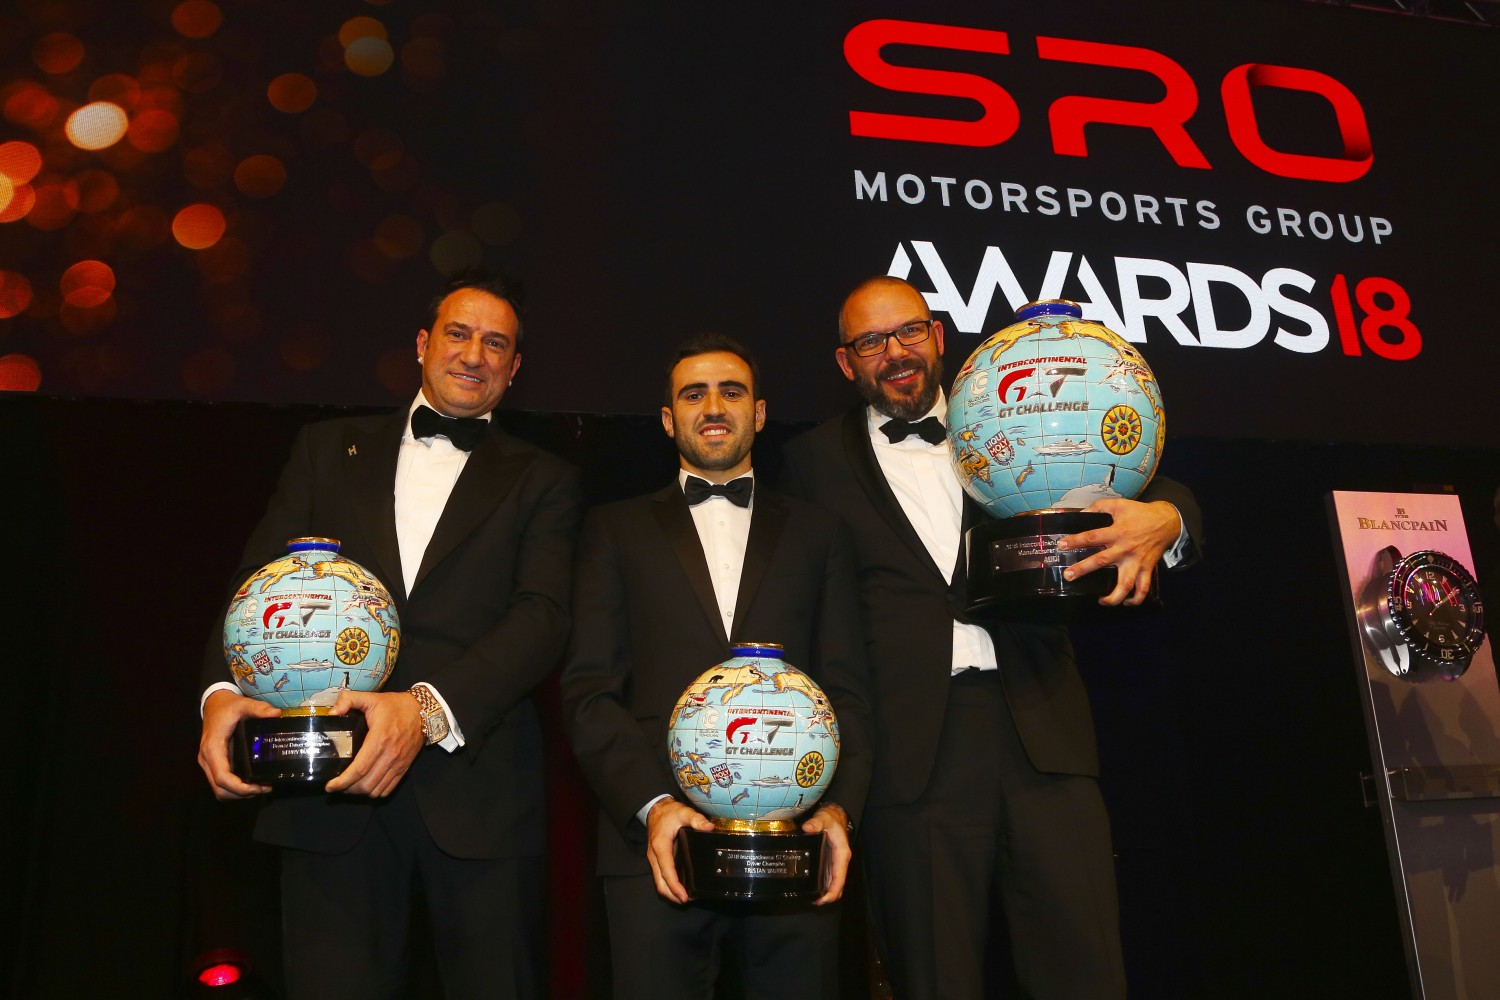 2018 Intercontinental GT Challenge champions receive unique trophies at SRO Awards